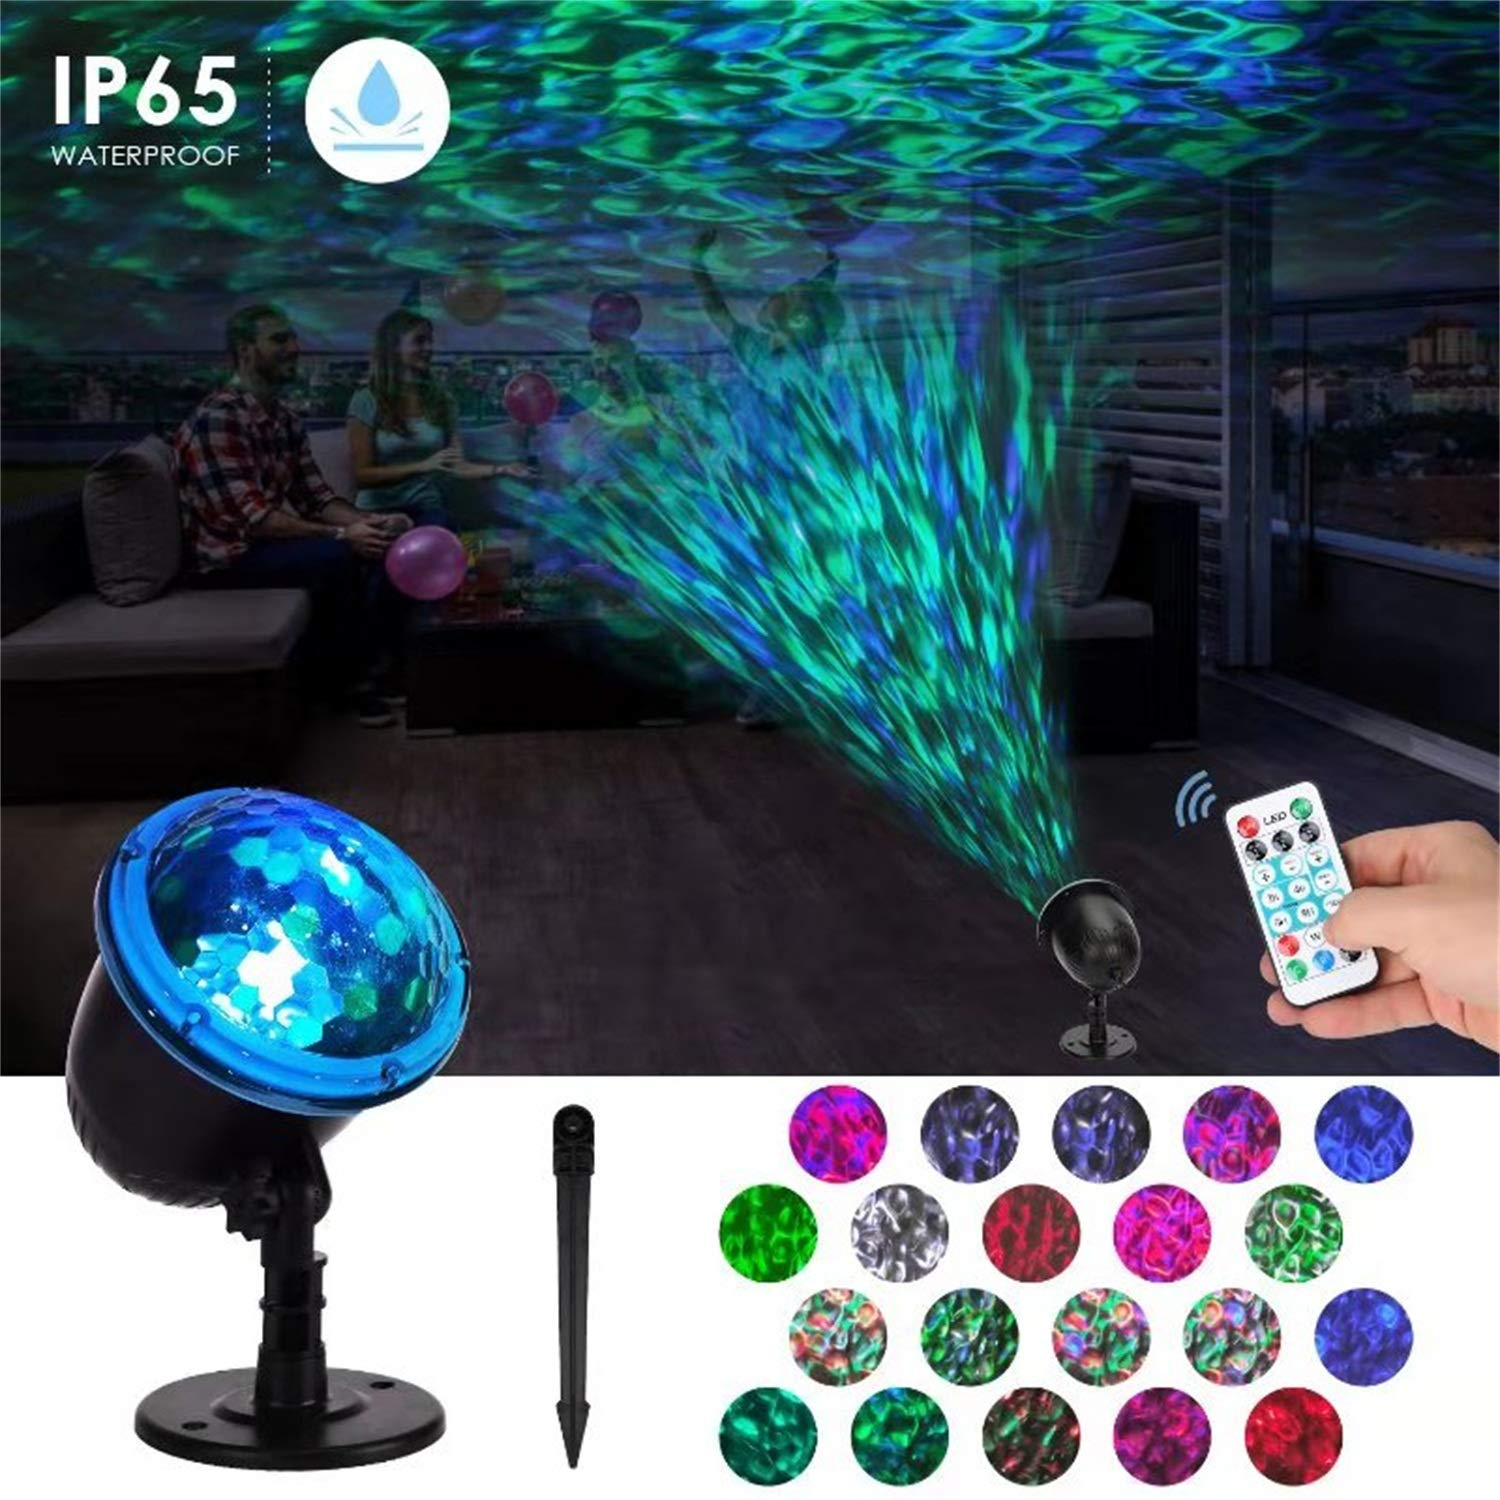 Halloween Projector Lights outdoor Water Wave Night Decorations,Ocean Wave Projector Waterproof LED Lamp with Ripple RGBW 3D Water Effect,Remote Control for Christma Wedding Party Holiday by Lanpuly